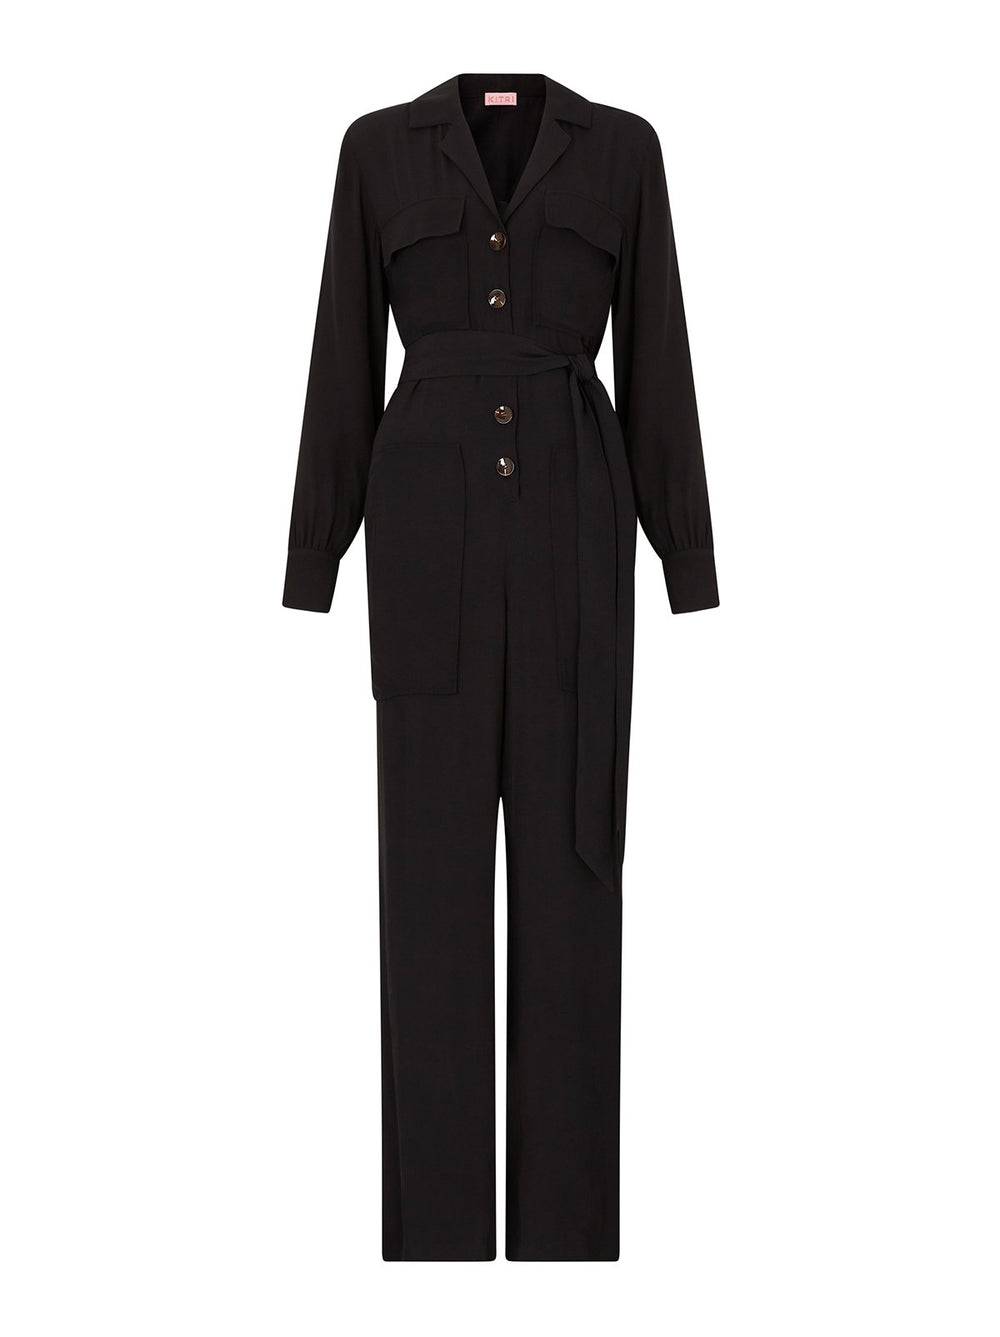 Johanna Black Utility Jumpsuit by KITRI Studio